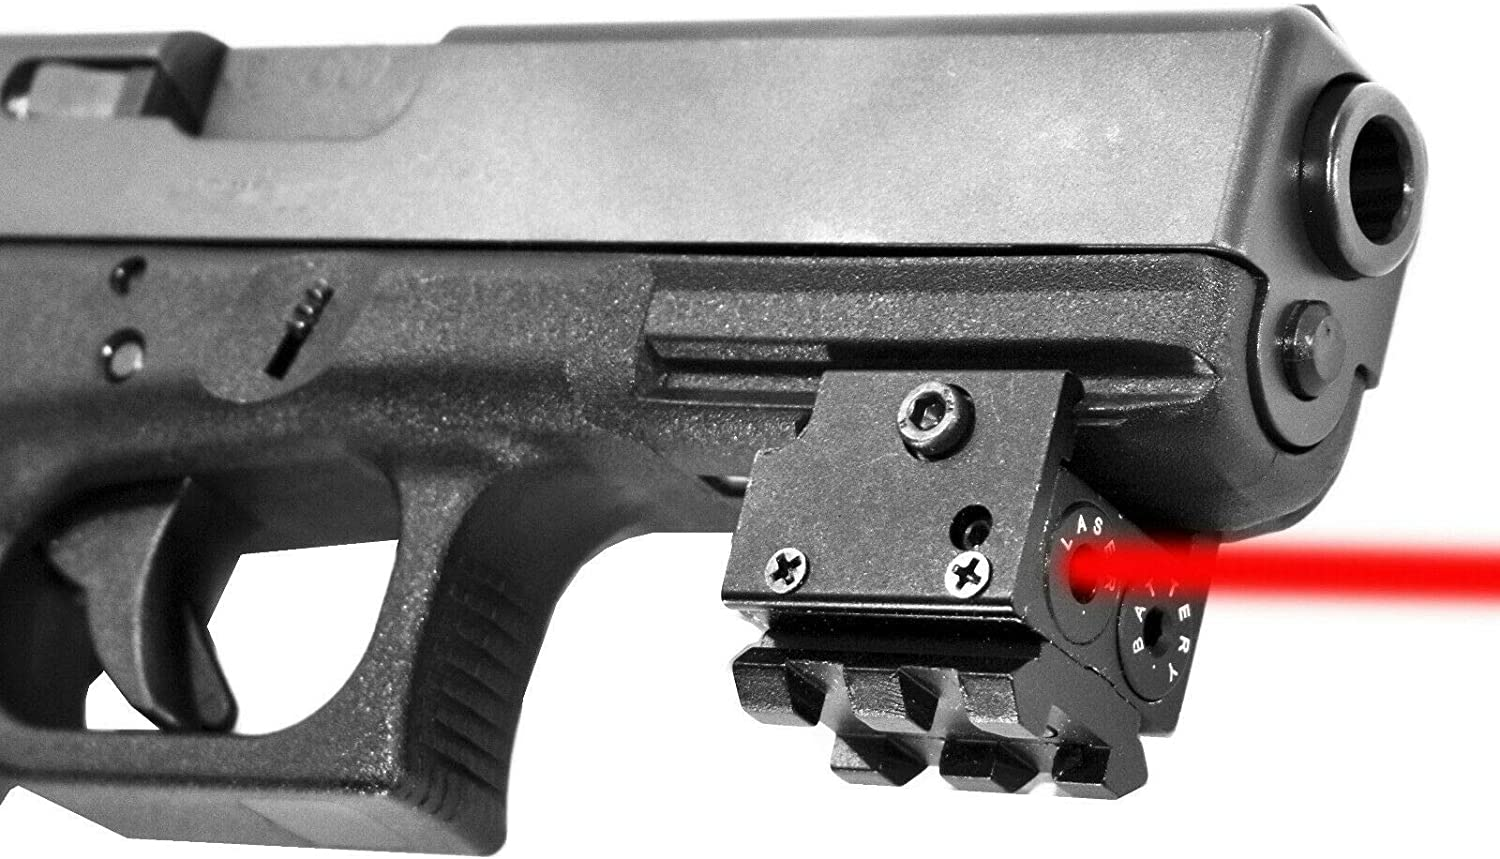 Trinity Tactical Compact Red Dot Laser Sight for KELTEC PMR30 Models Glock Smith Wesson Class IIIA 635nM Less Than 5mW